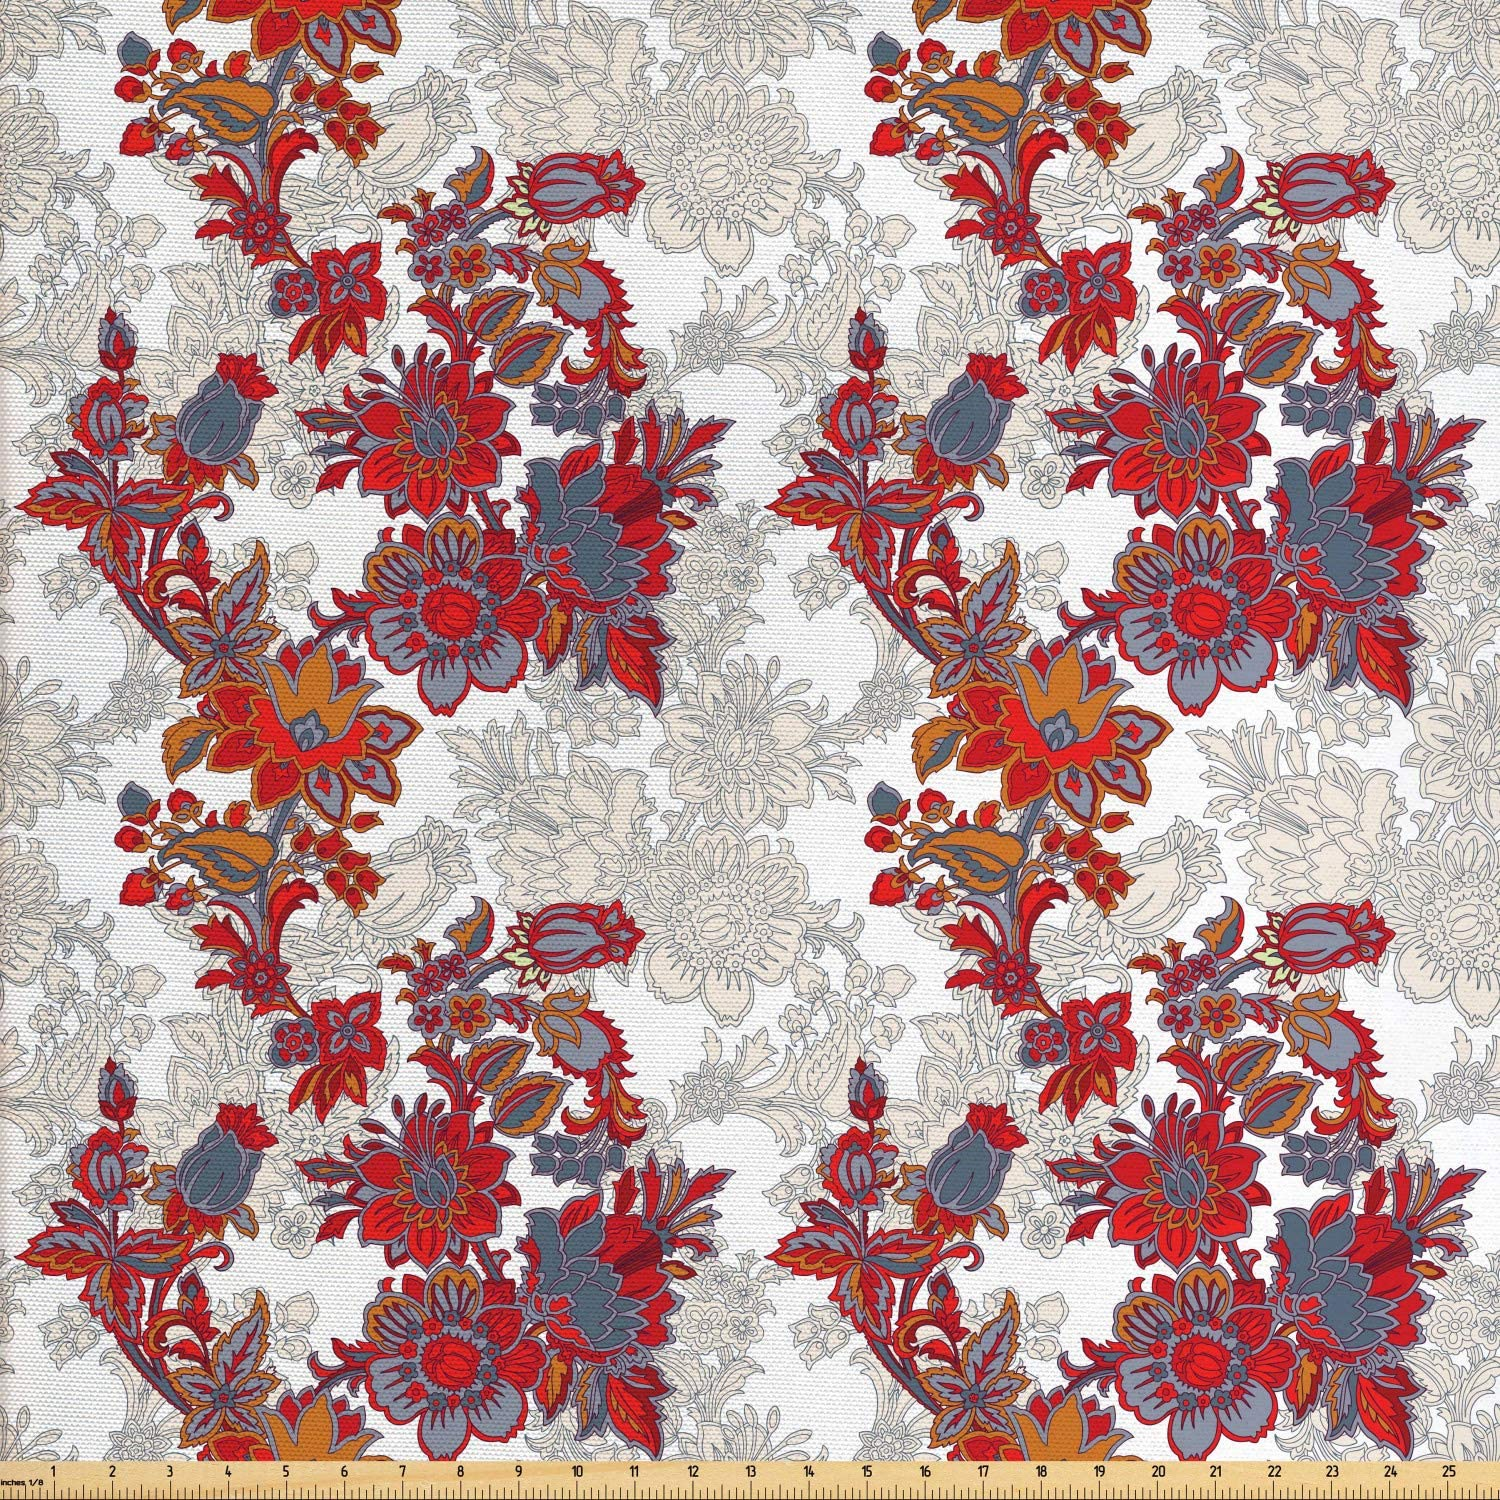 Ambesonne Floral Fabric by The Yard, Romantic Boho Style Narcissus Magic Magnolia Rose Vibrant Pattern Print, Decorative Fabric for Upholstery and Home Accents, 3 Yards, Red Black